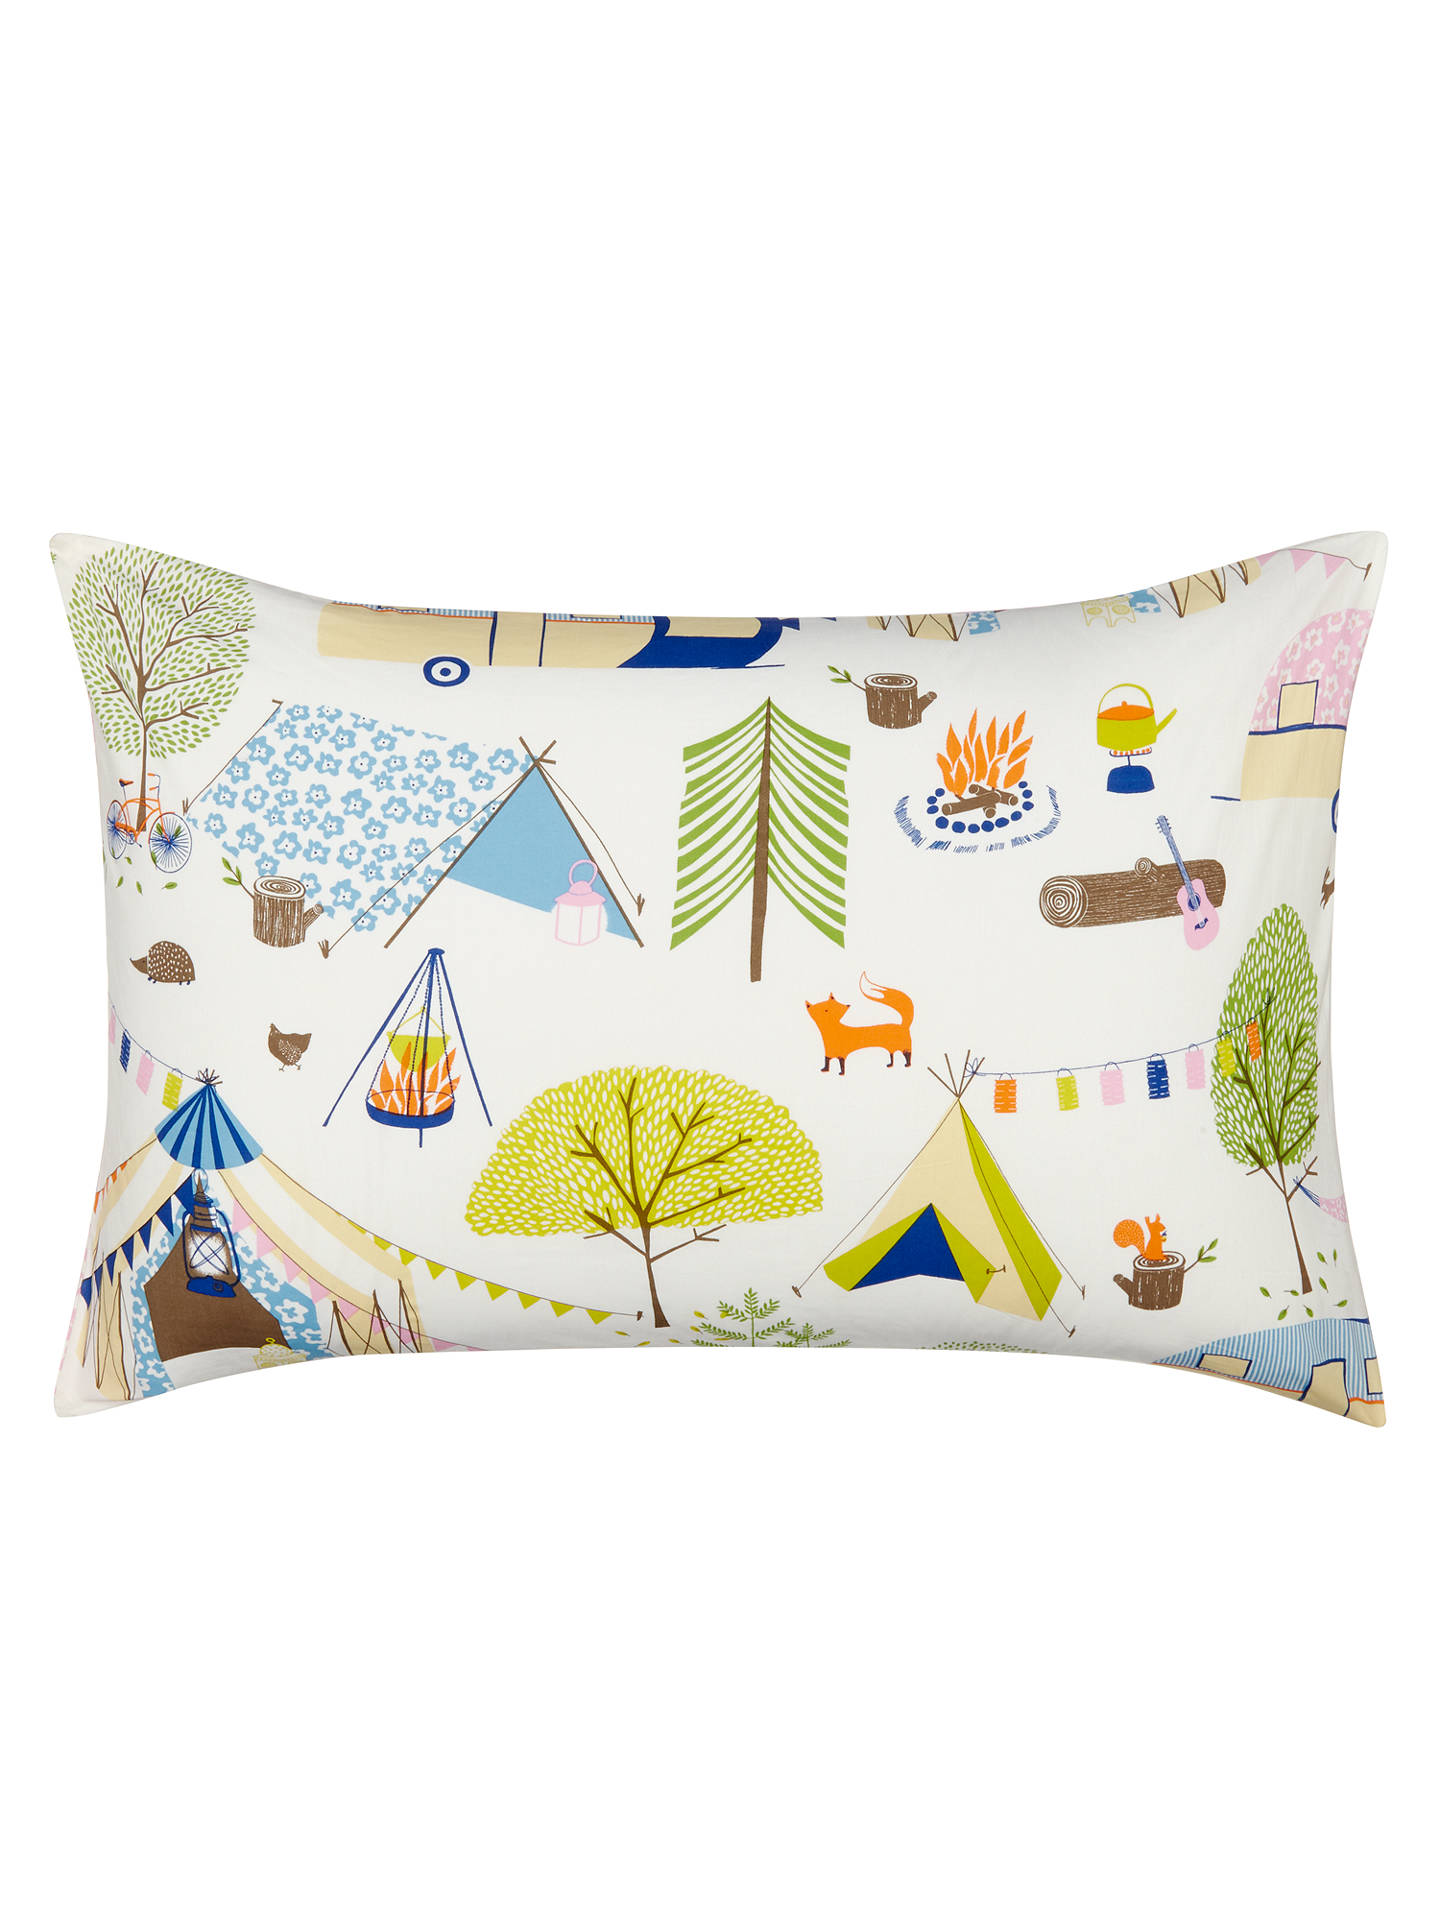 little home at John Lewis Camping Duvet Cover and Pillowcase Set, Single